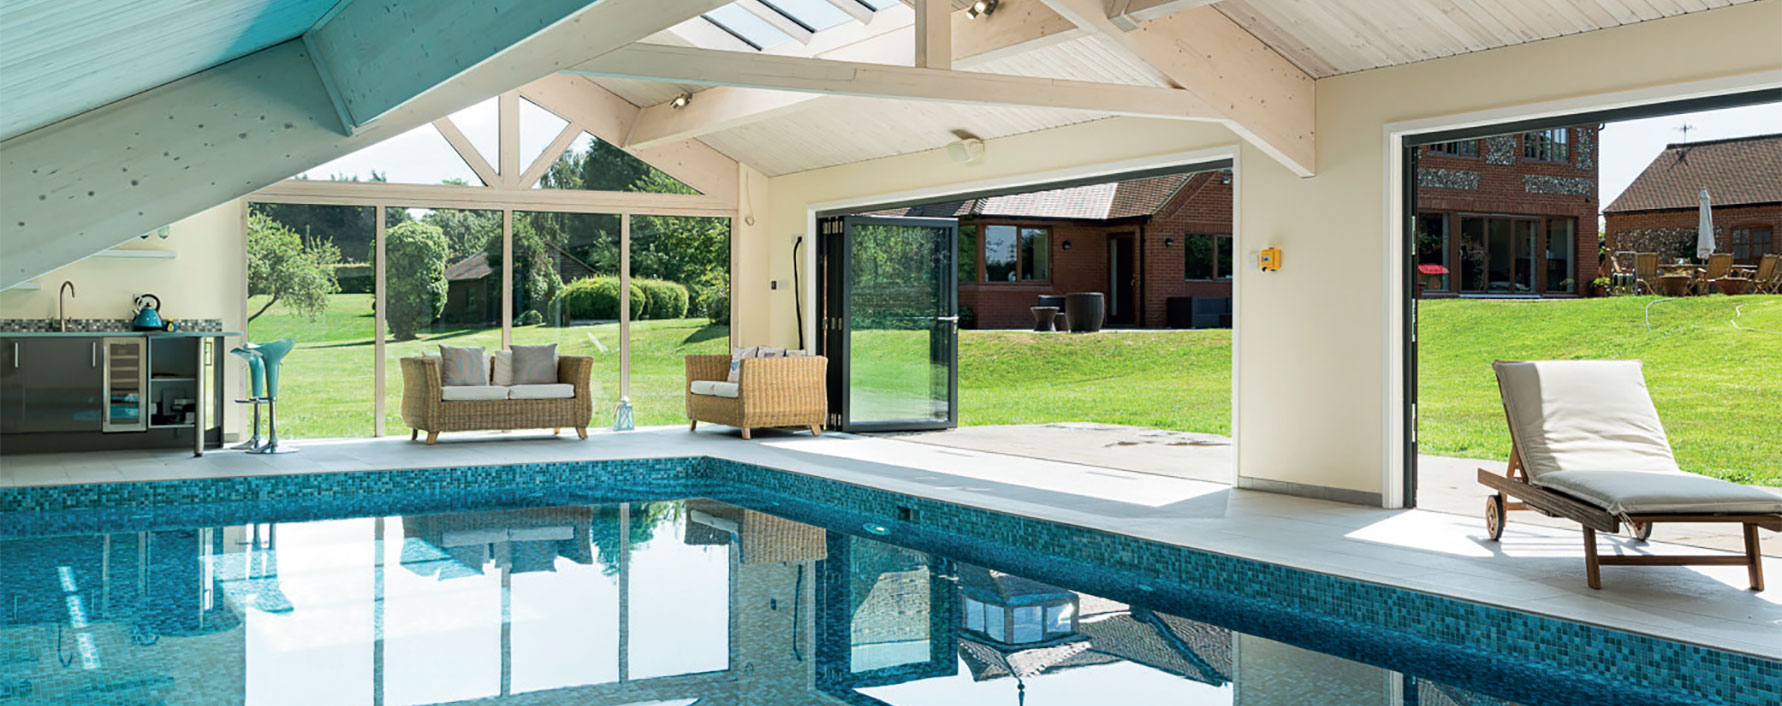 Home Swimming Pools - The Hidden Truth